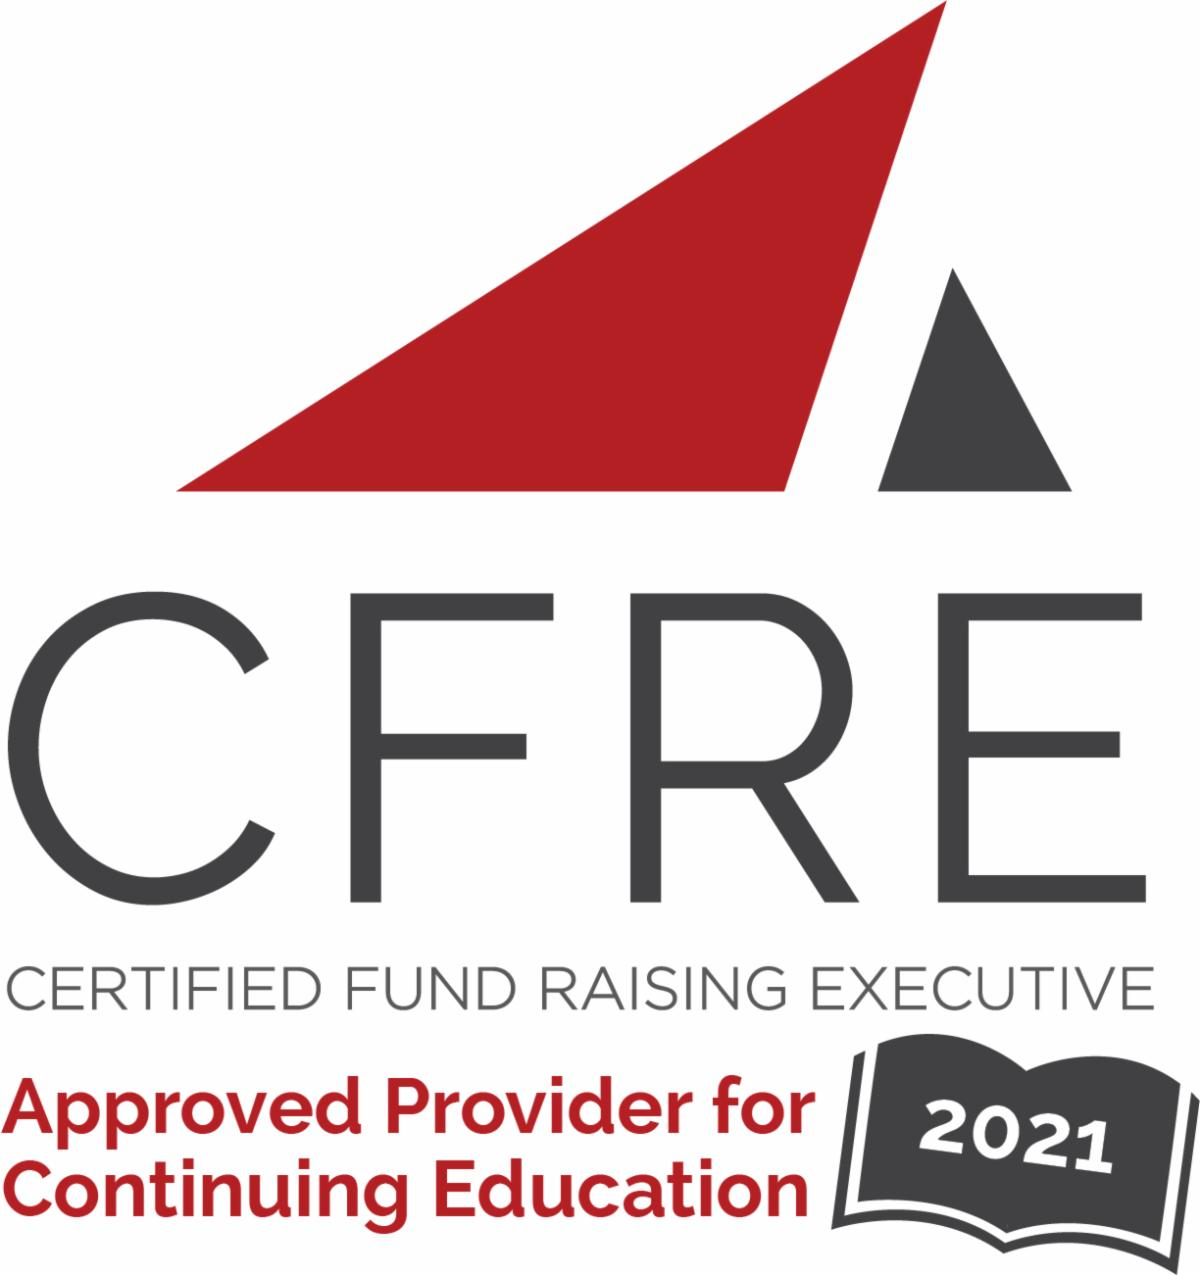 This program has been approved for 1.0 pts of CFRE continuing education credits.